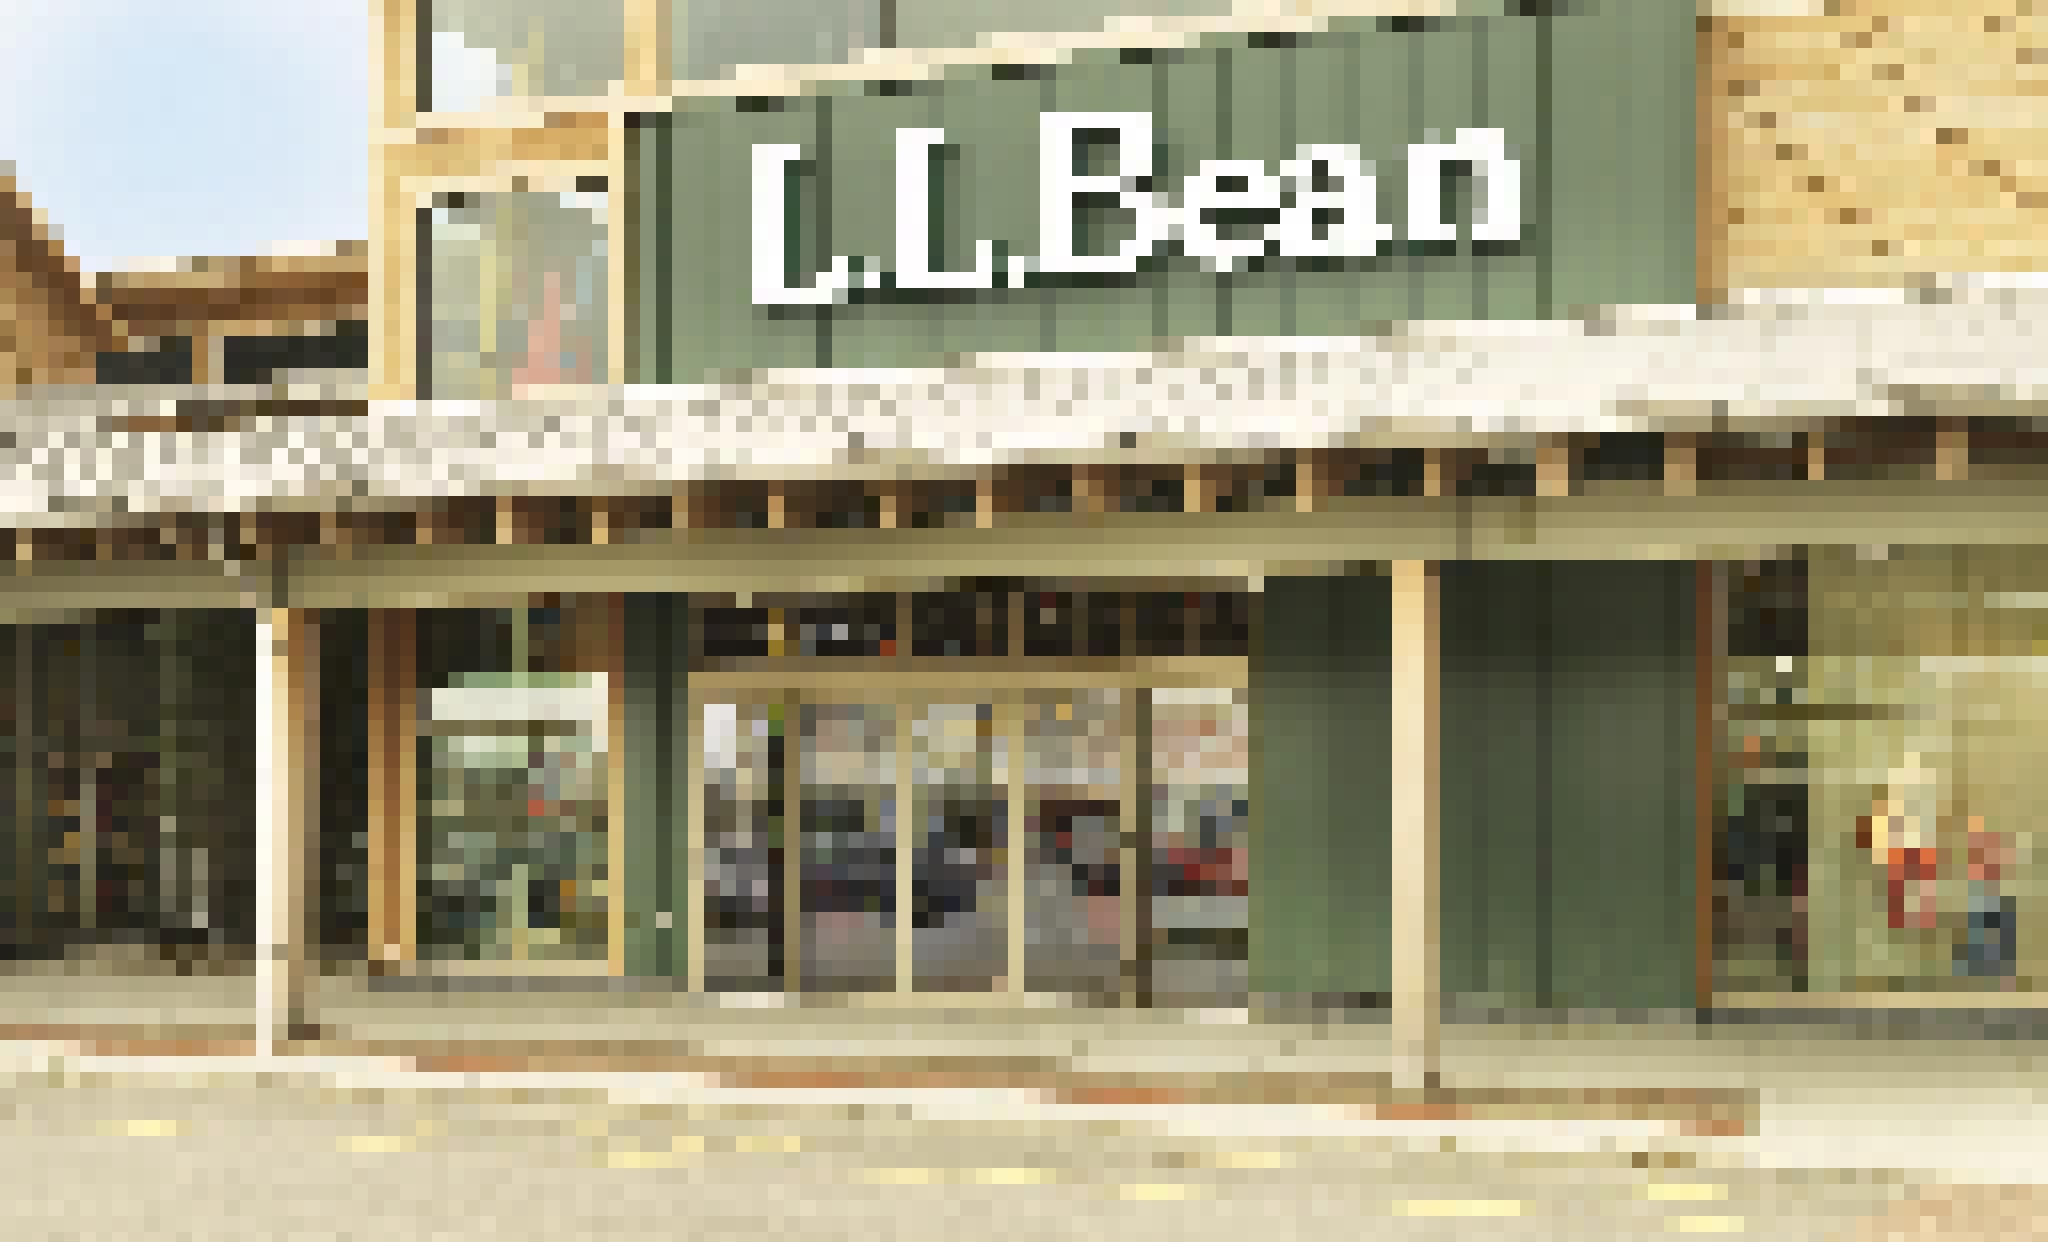 folding glass wall used as storefront for L.L.Bean